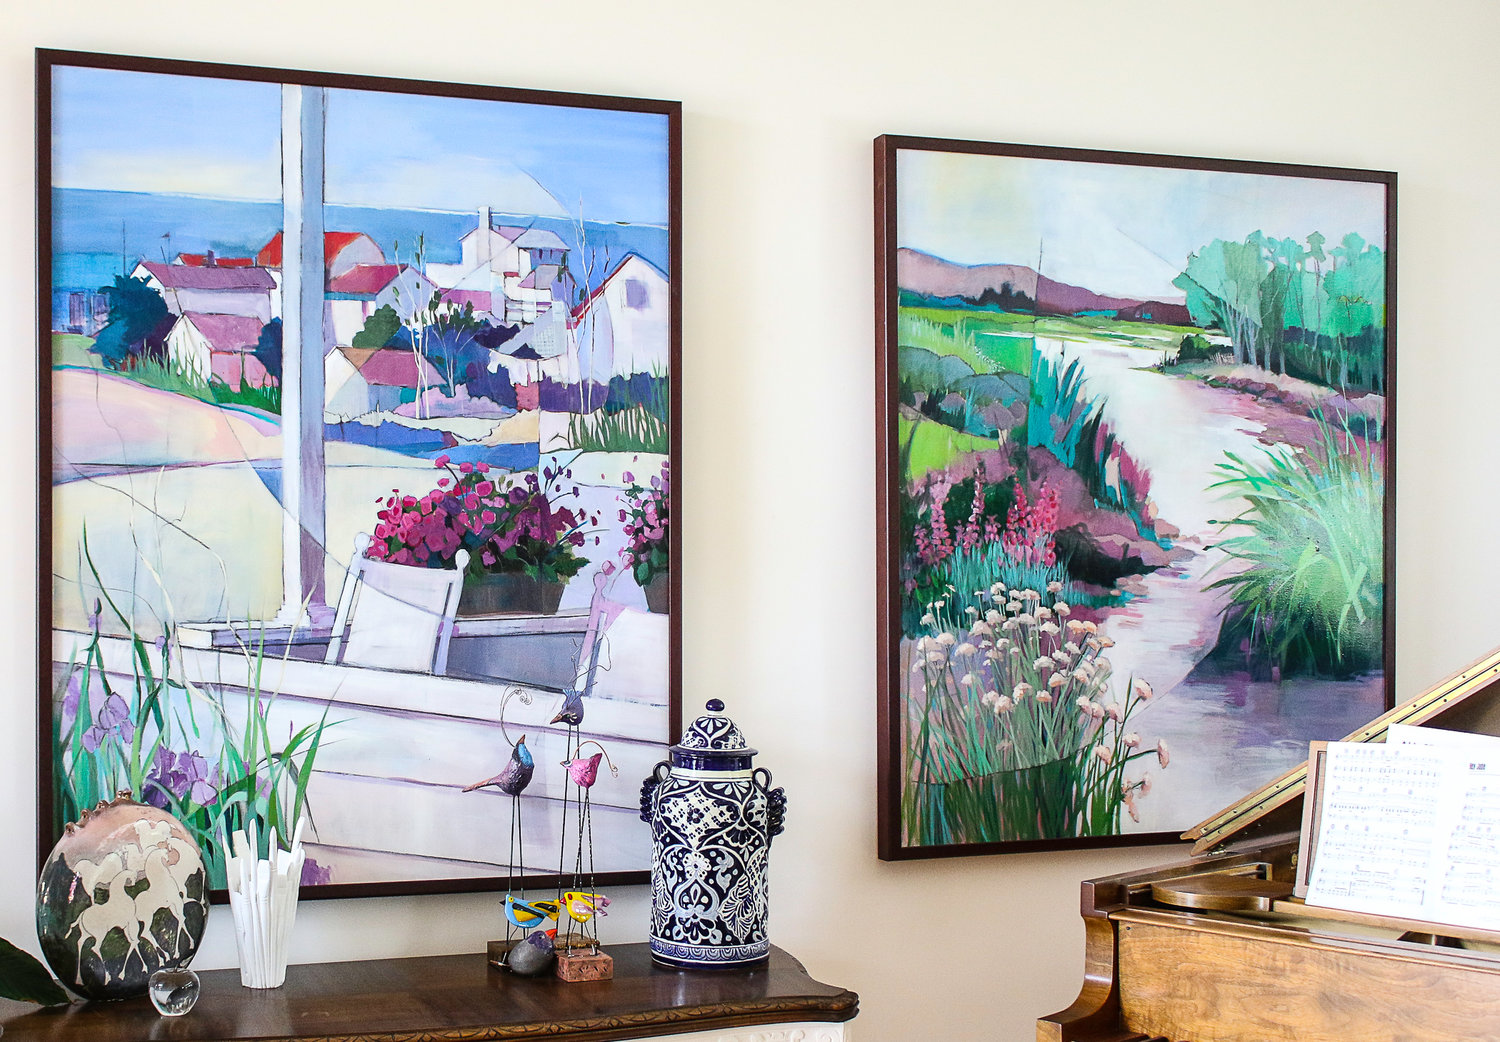 Two paintings of Maine beach houses hanging side-by-side in the living room illustrate her interpretation of the fracturing technique.